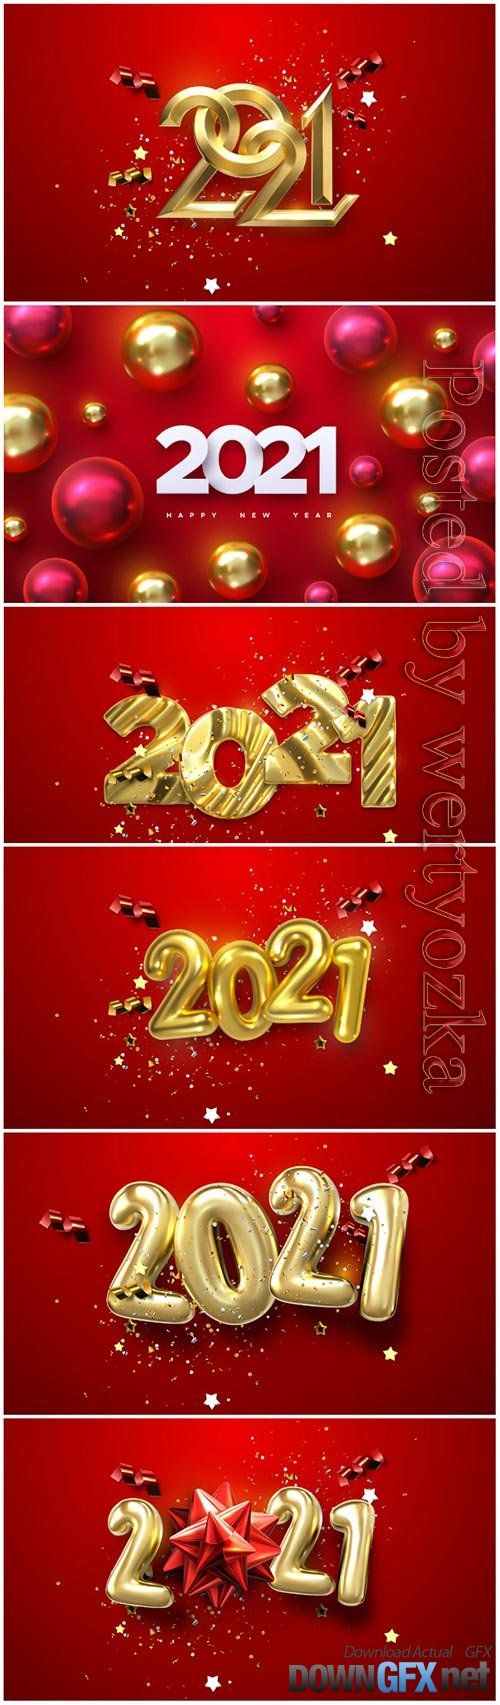 Vector numbers 2021 for new year illustration